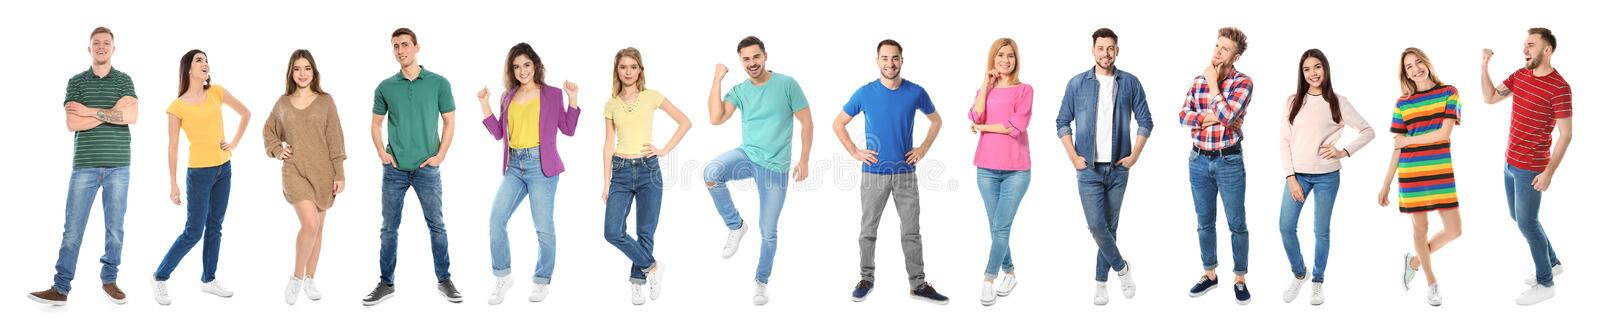 Collage of emotional people on white background royalty free stock images